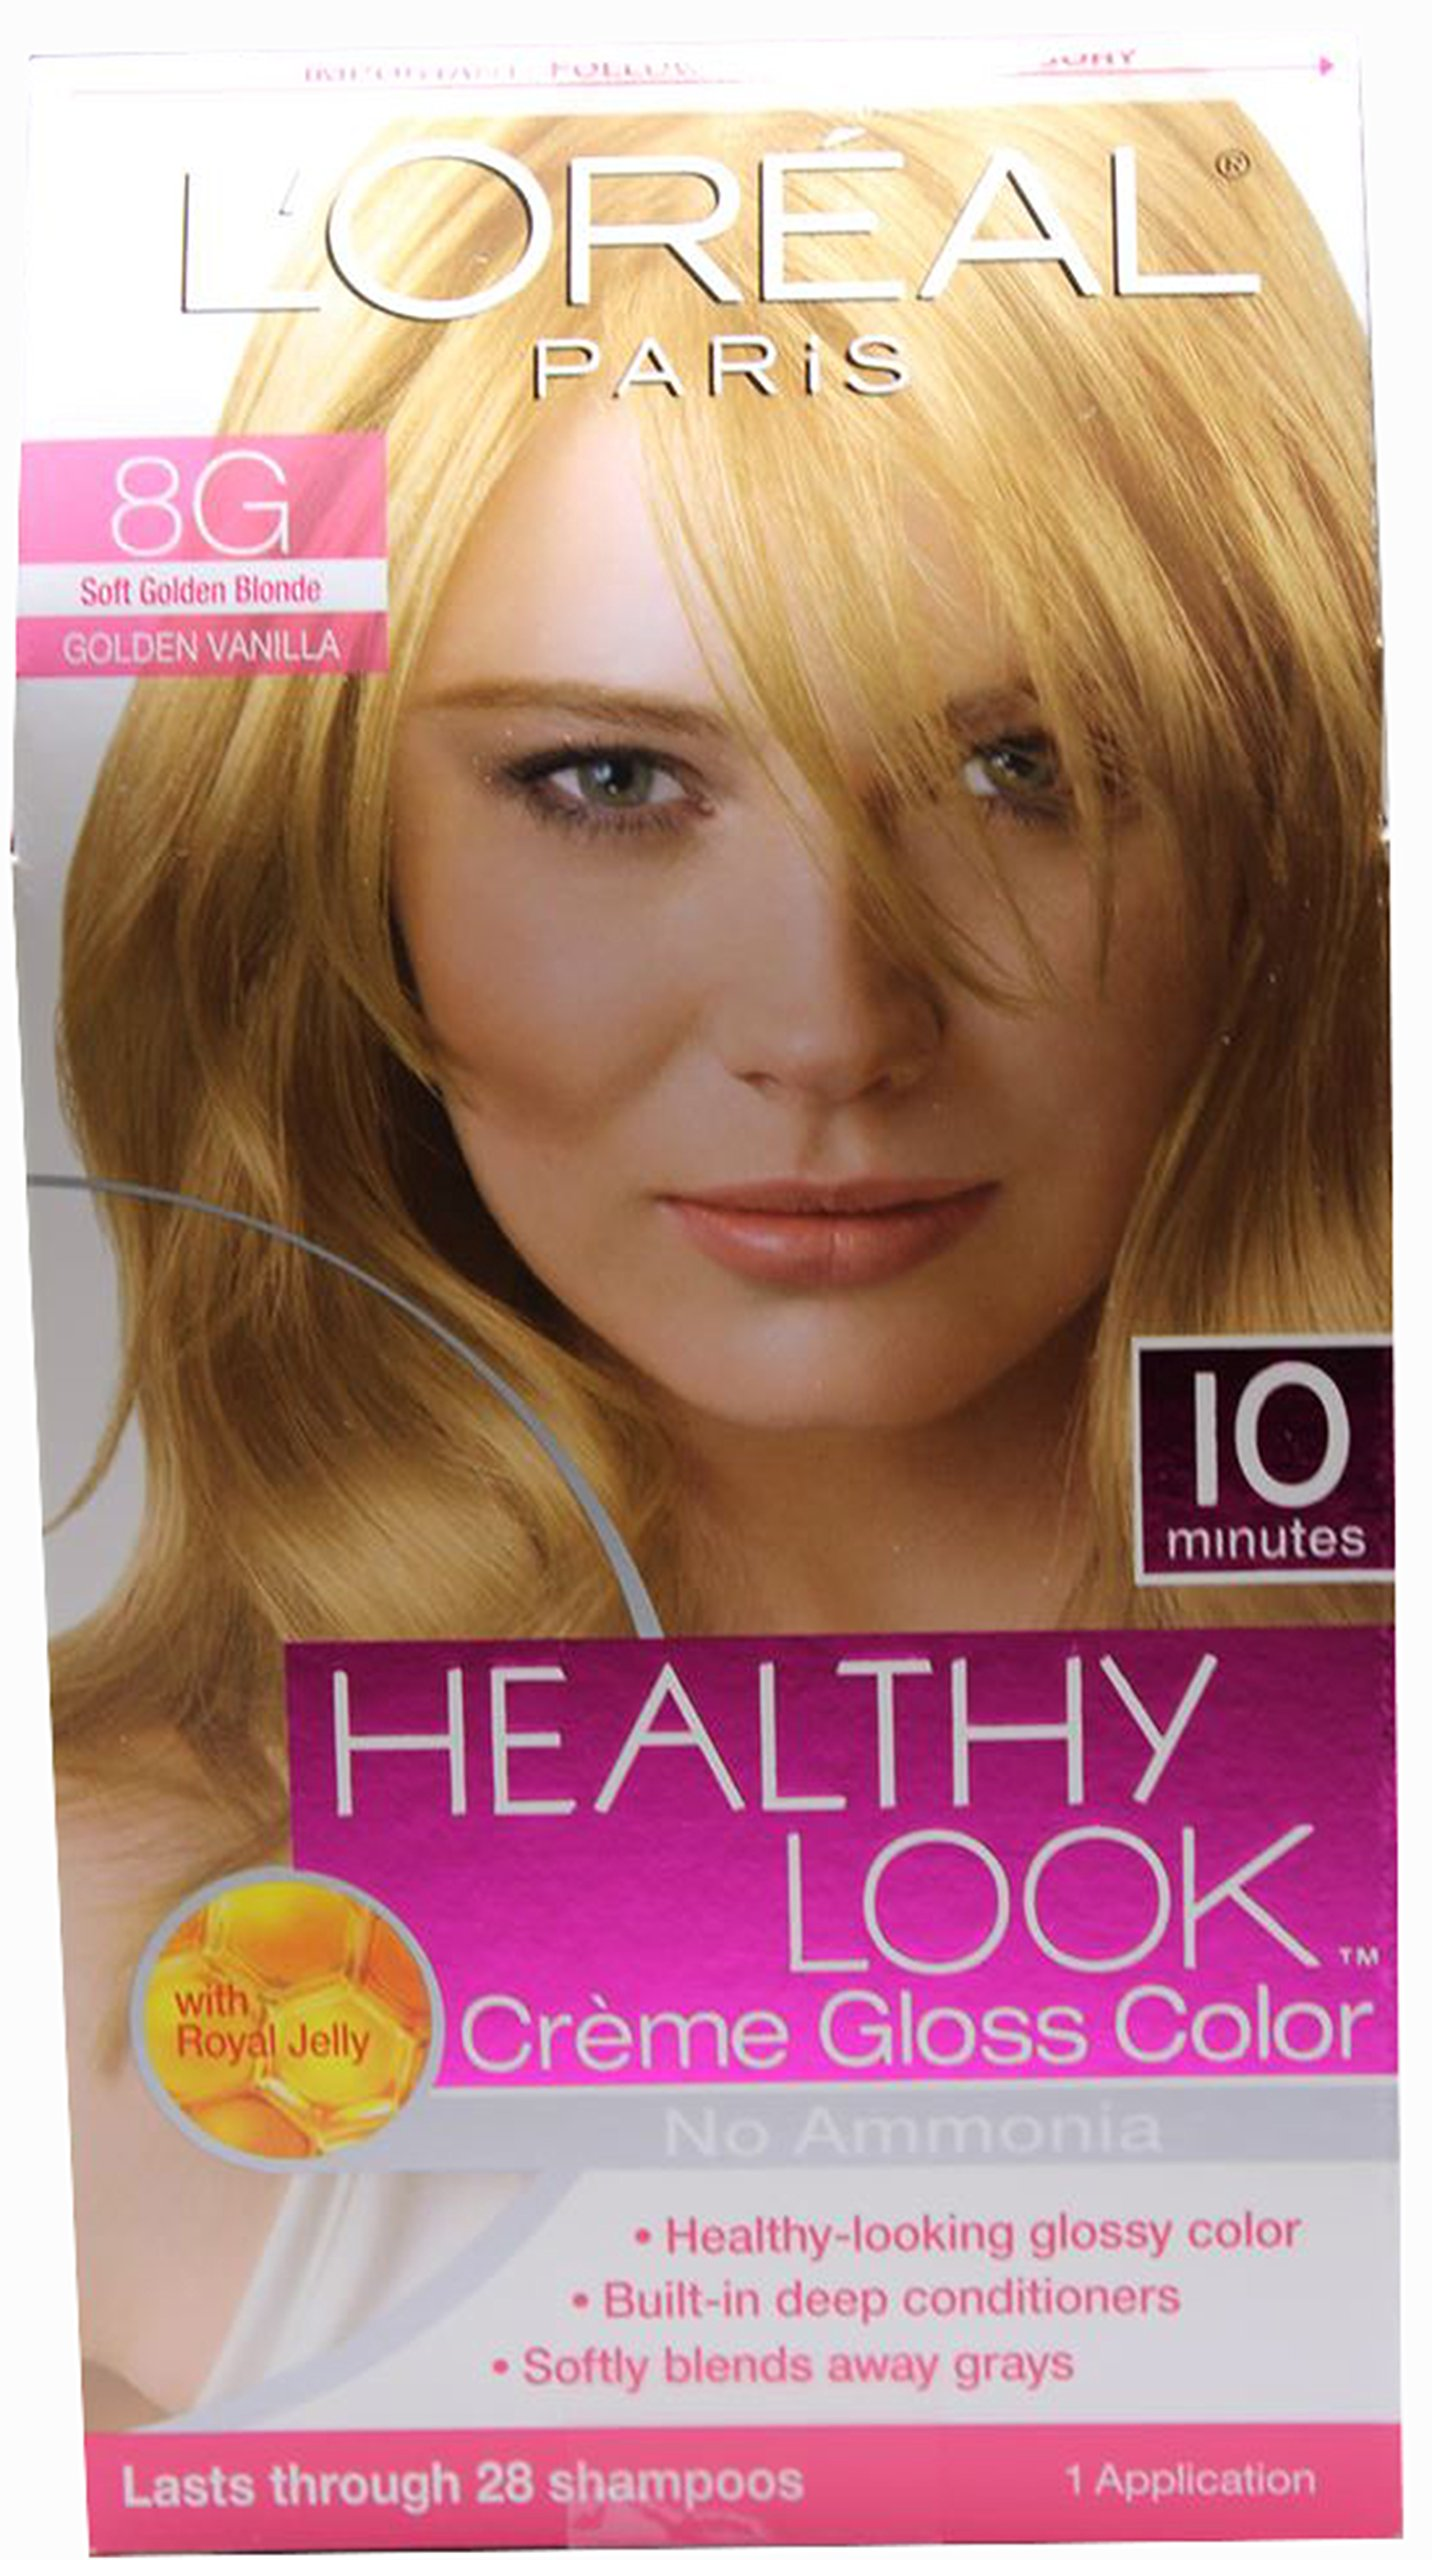 L'oreal Paris Healthy Look Crème Gloss- Soft Golden Blonde 8g (Pack of 6)